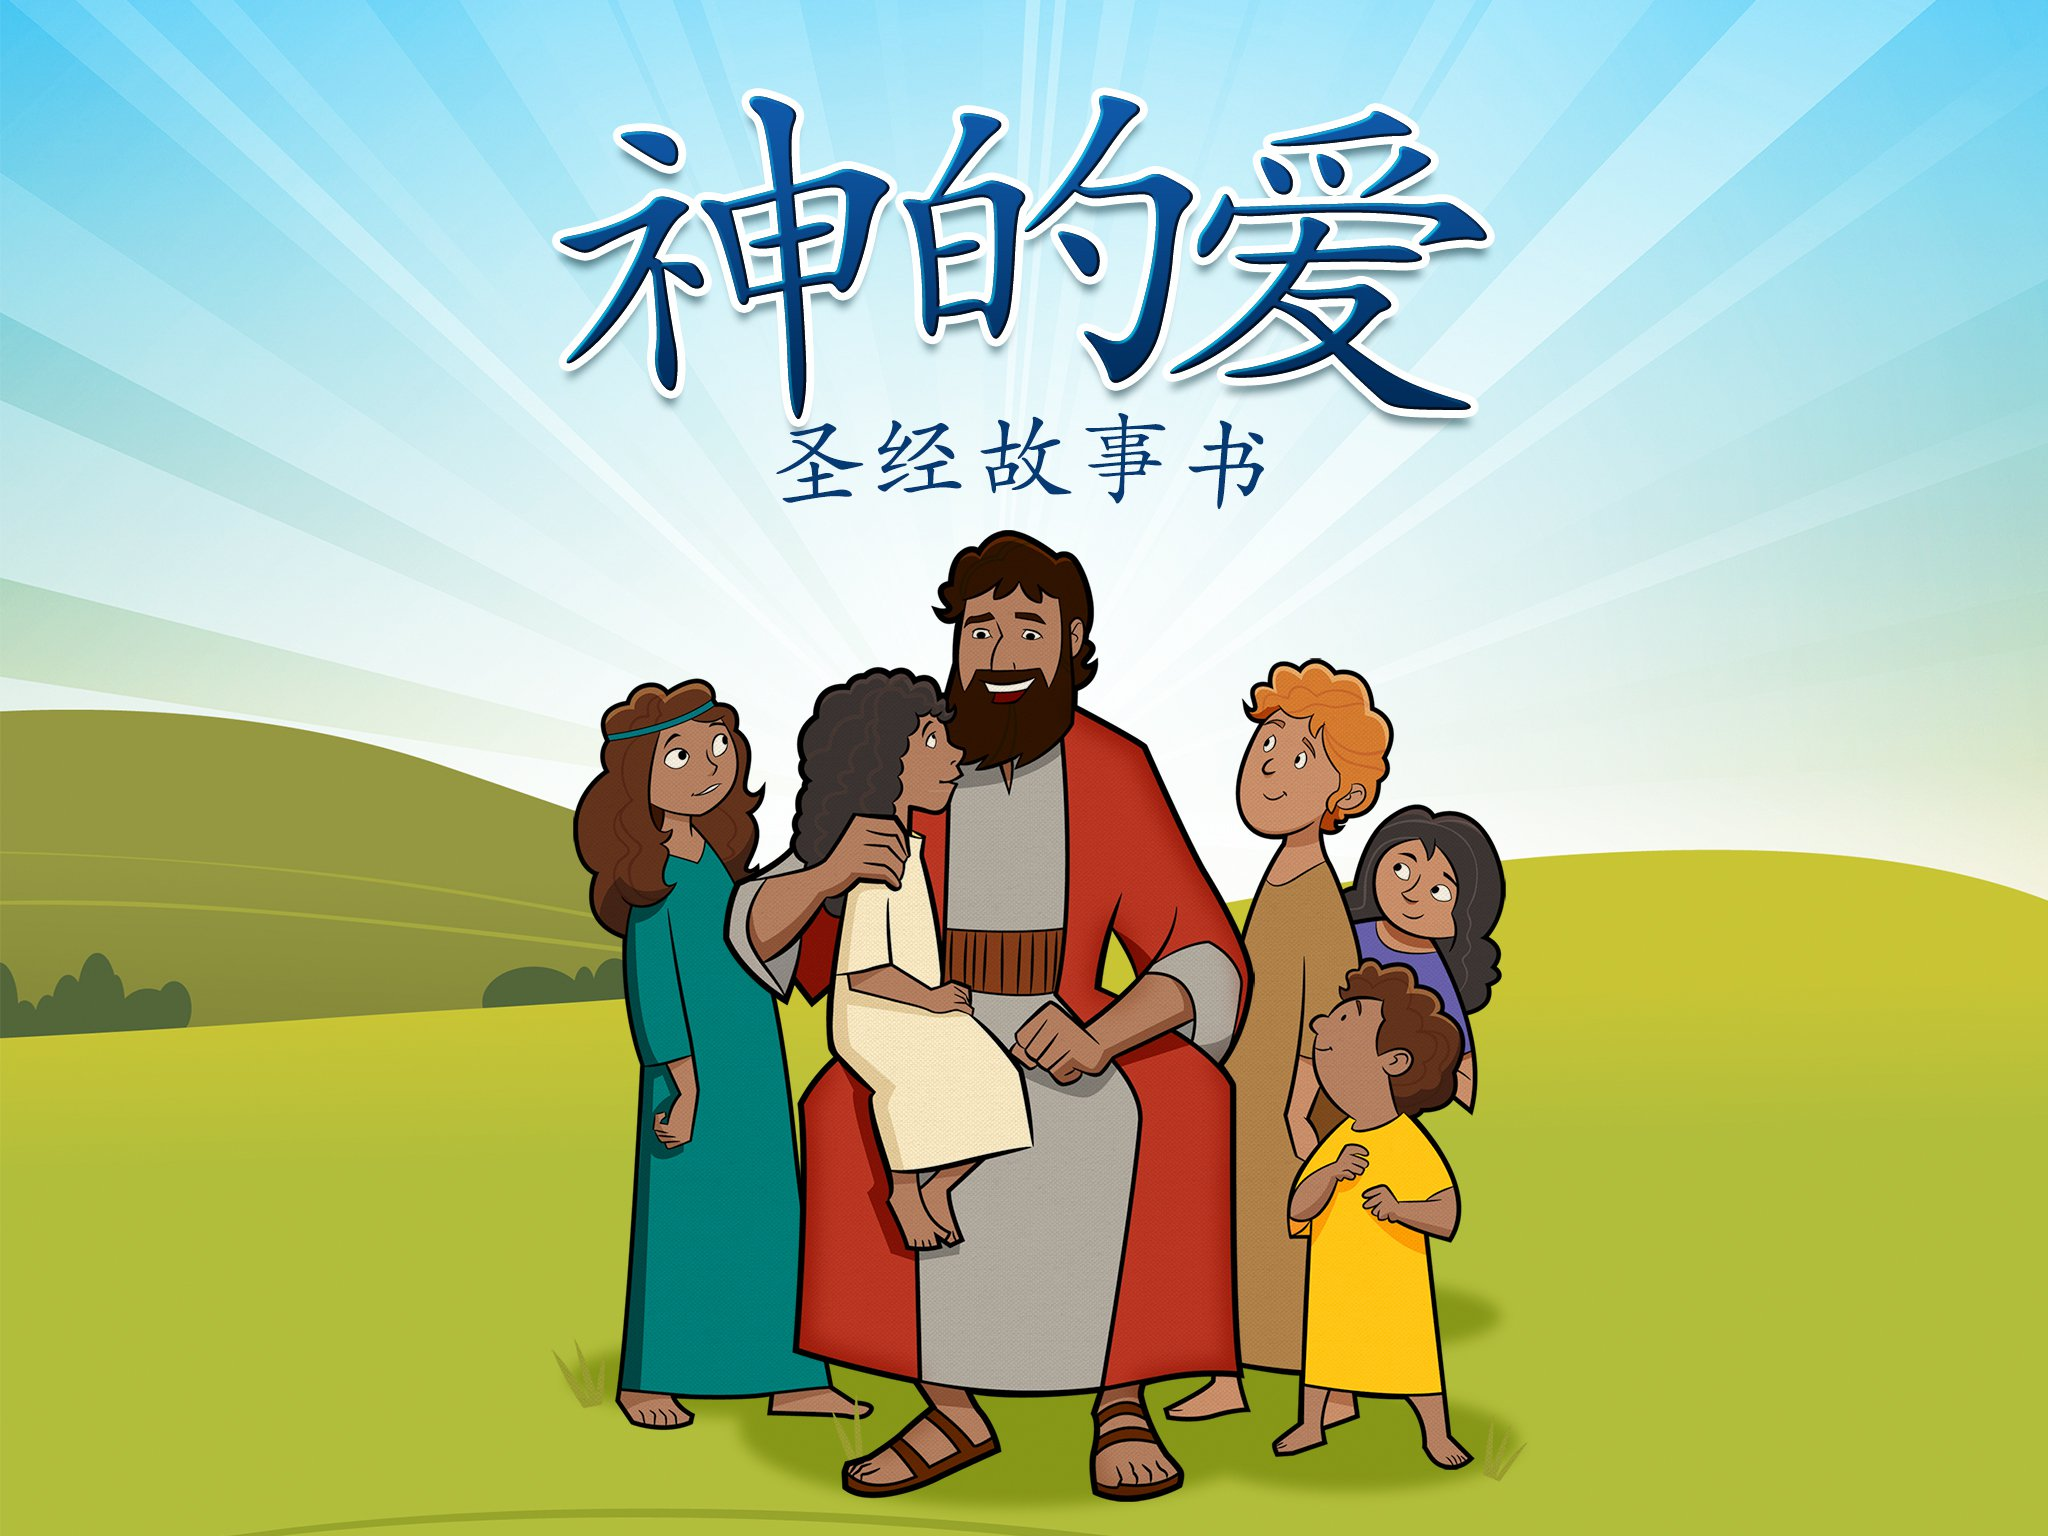 Free Chinese Edition of God's Love Storybook Now Available